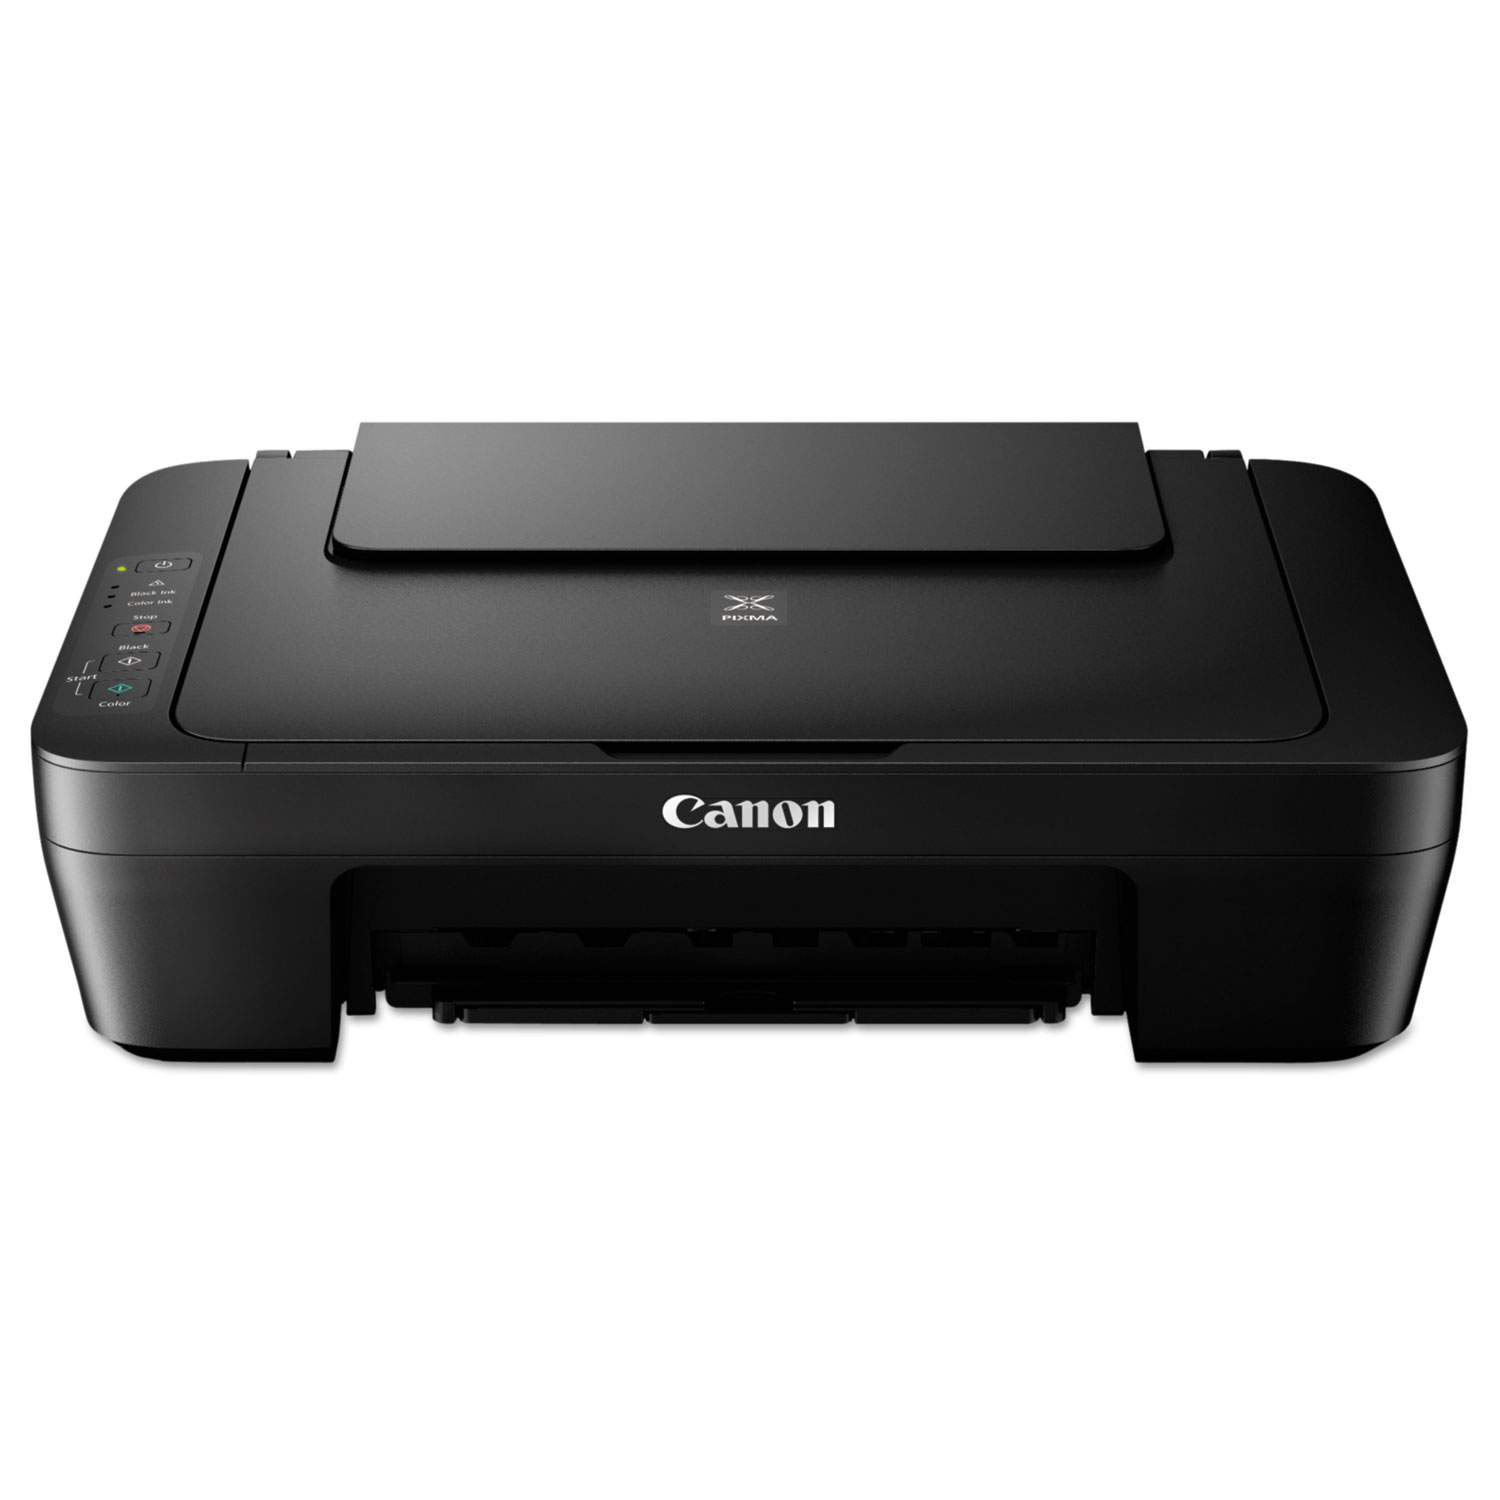 PIXMA MG2525 Inkjet Printer, Copy/Print/Scan